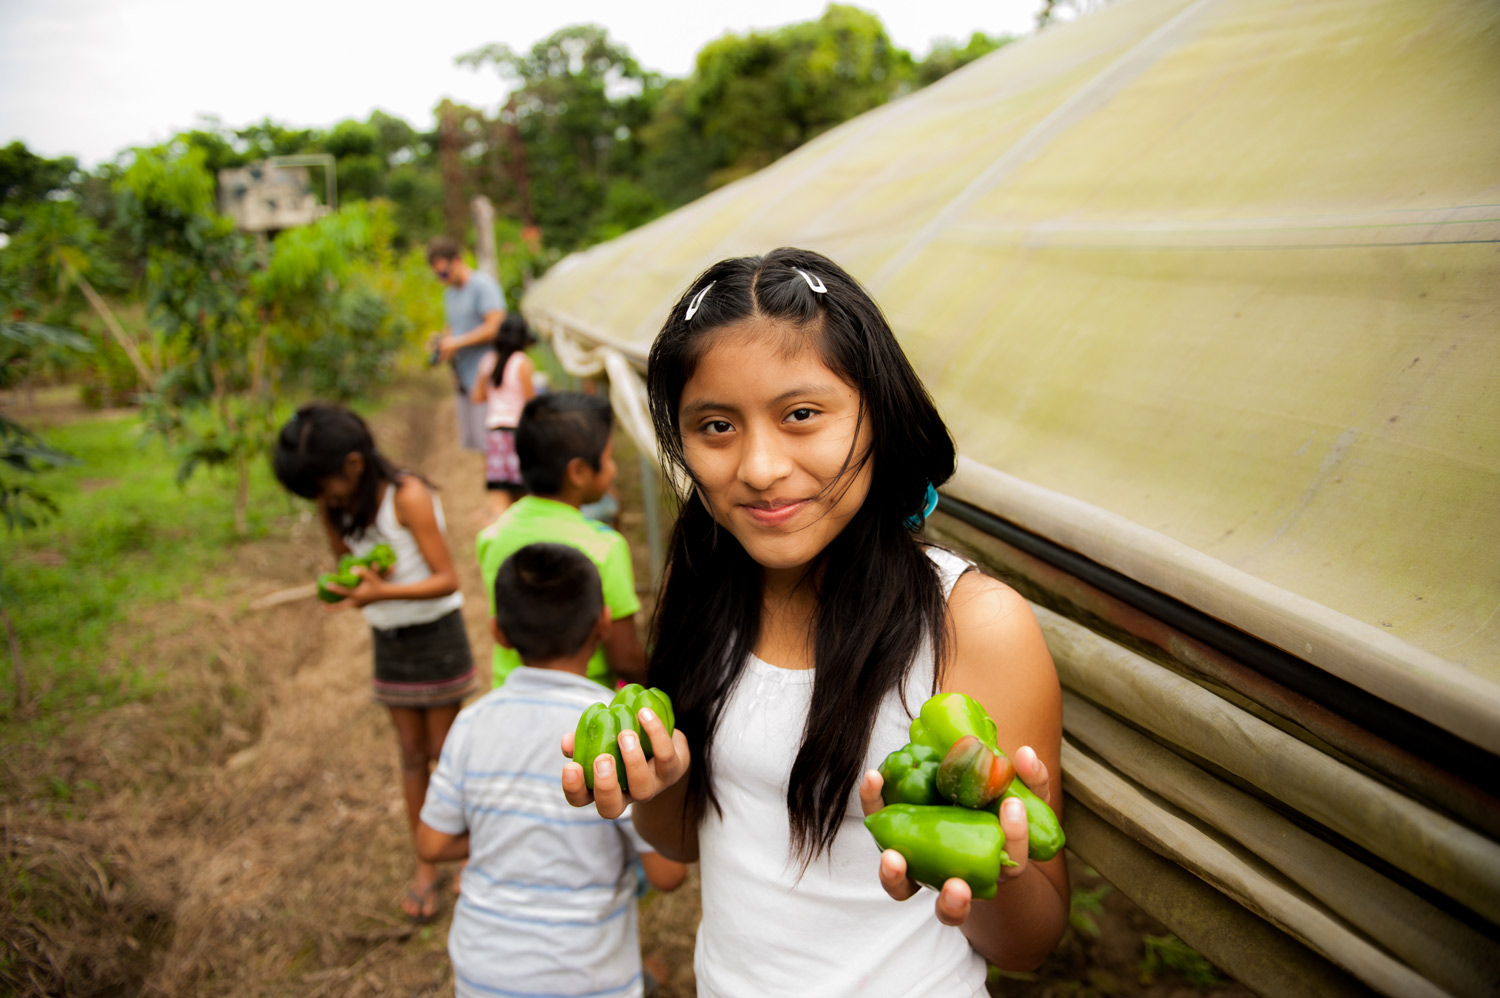 Casa-Guatemala_Girl-Holding-Vegetables.jpg